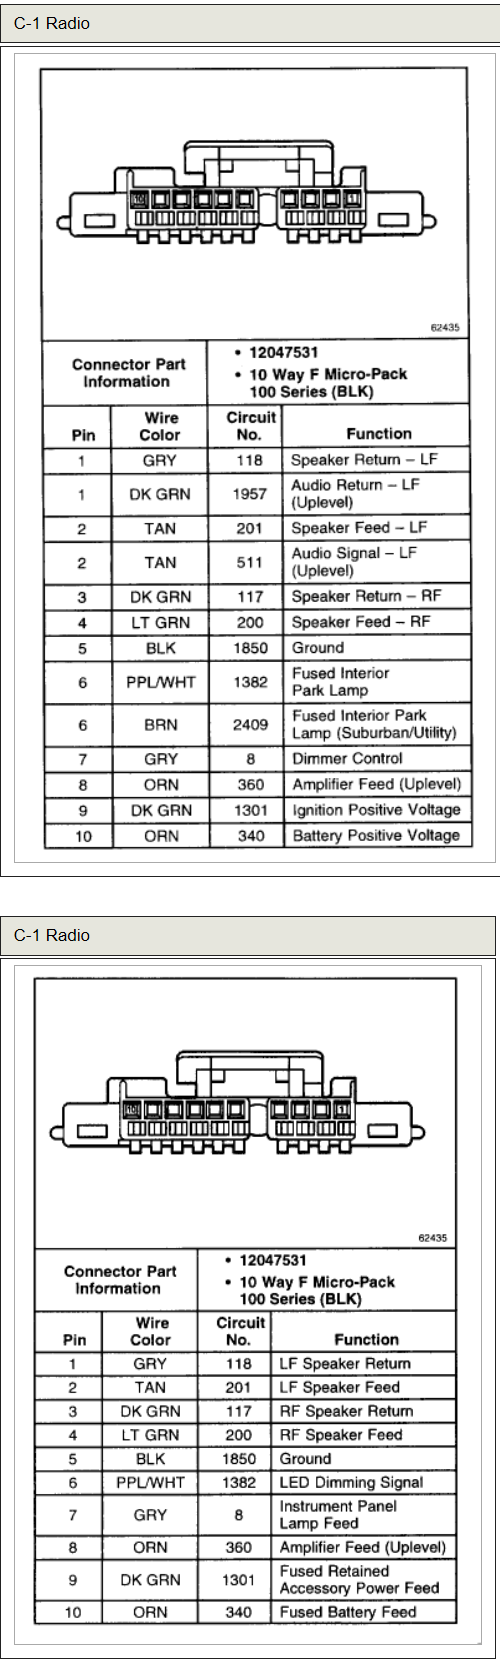 Chevrolet Car Radio Stereo Audio Wiring Diagram Autoradio Connector 98 Chevy Van Wire Colors Installation Schematic Schema Esquema De Conexiones Anschlusskammern Konektor